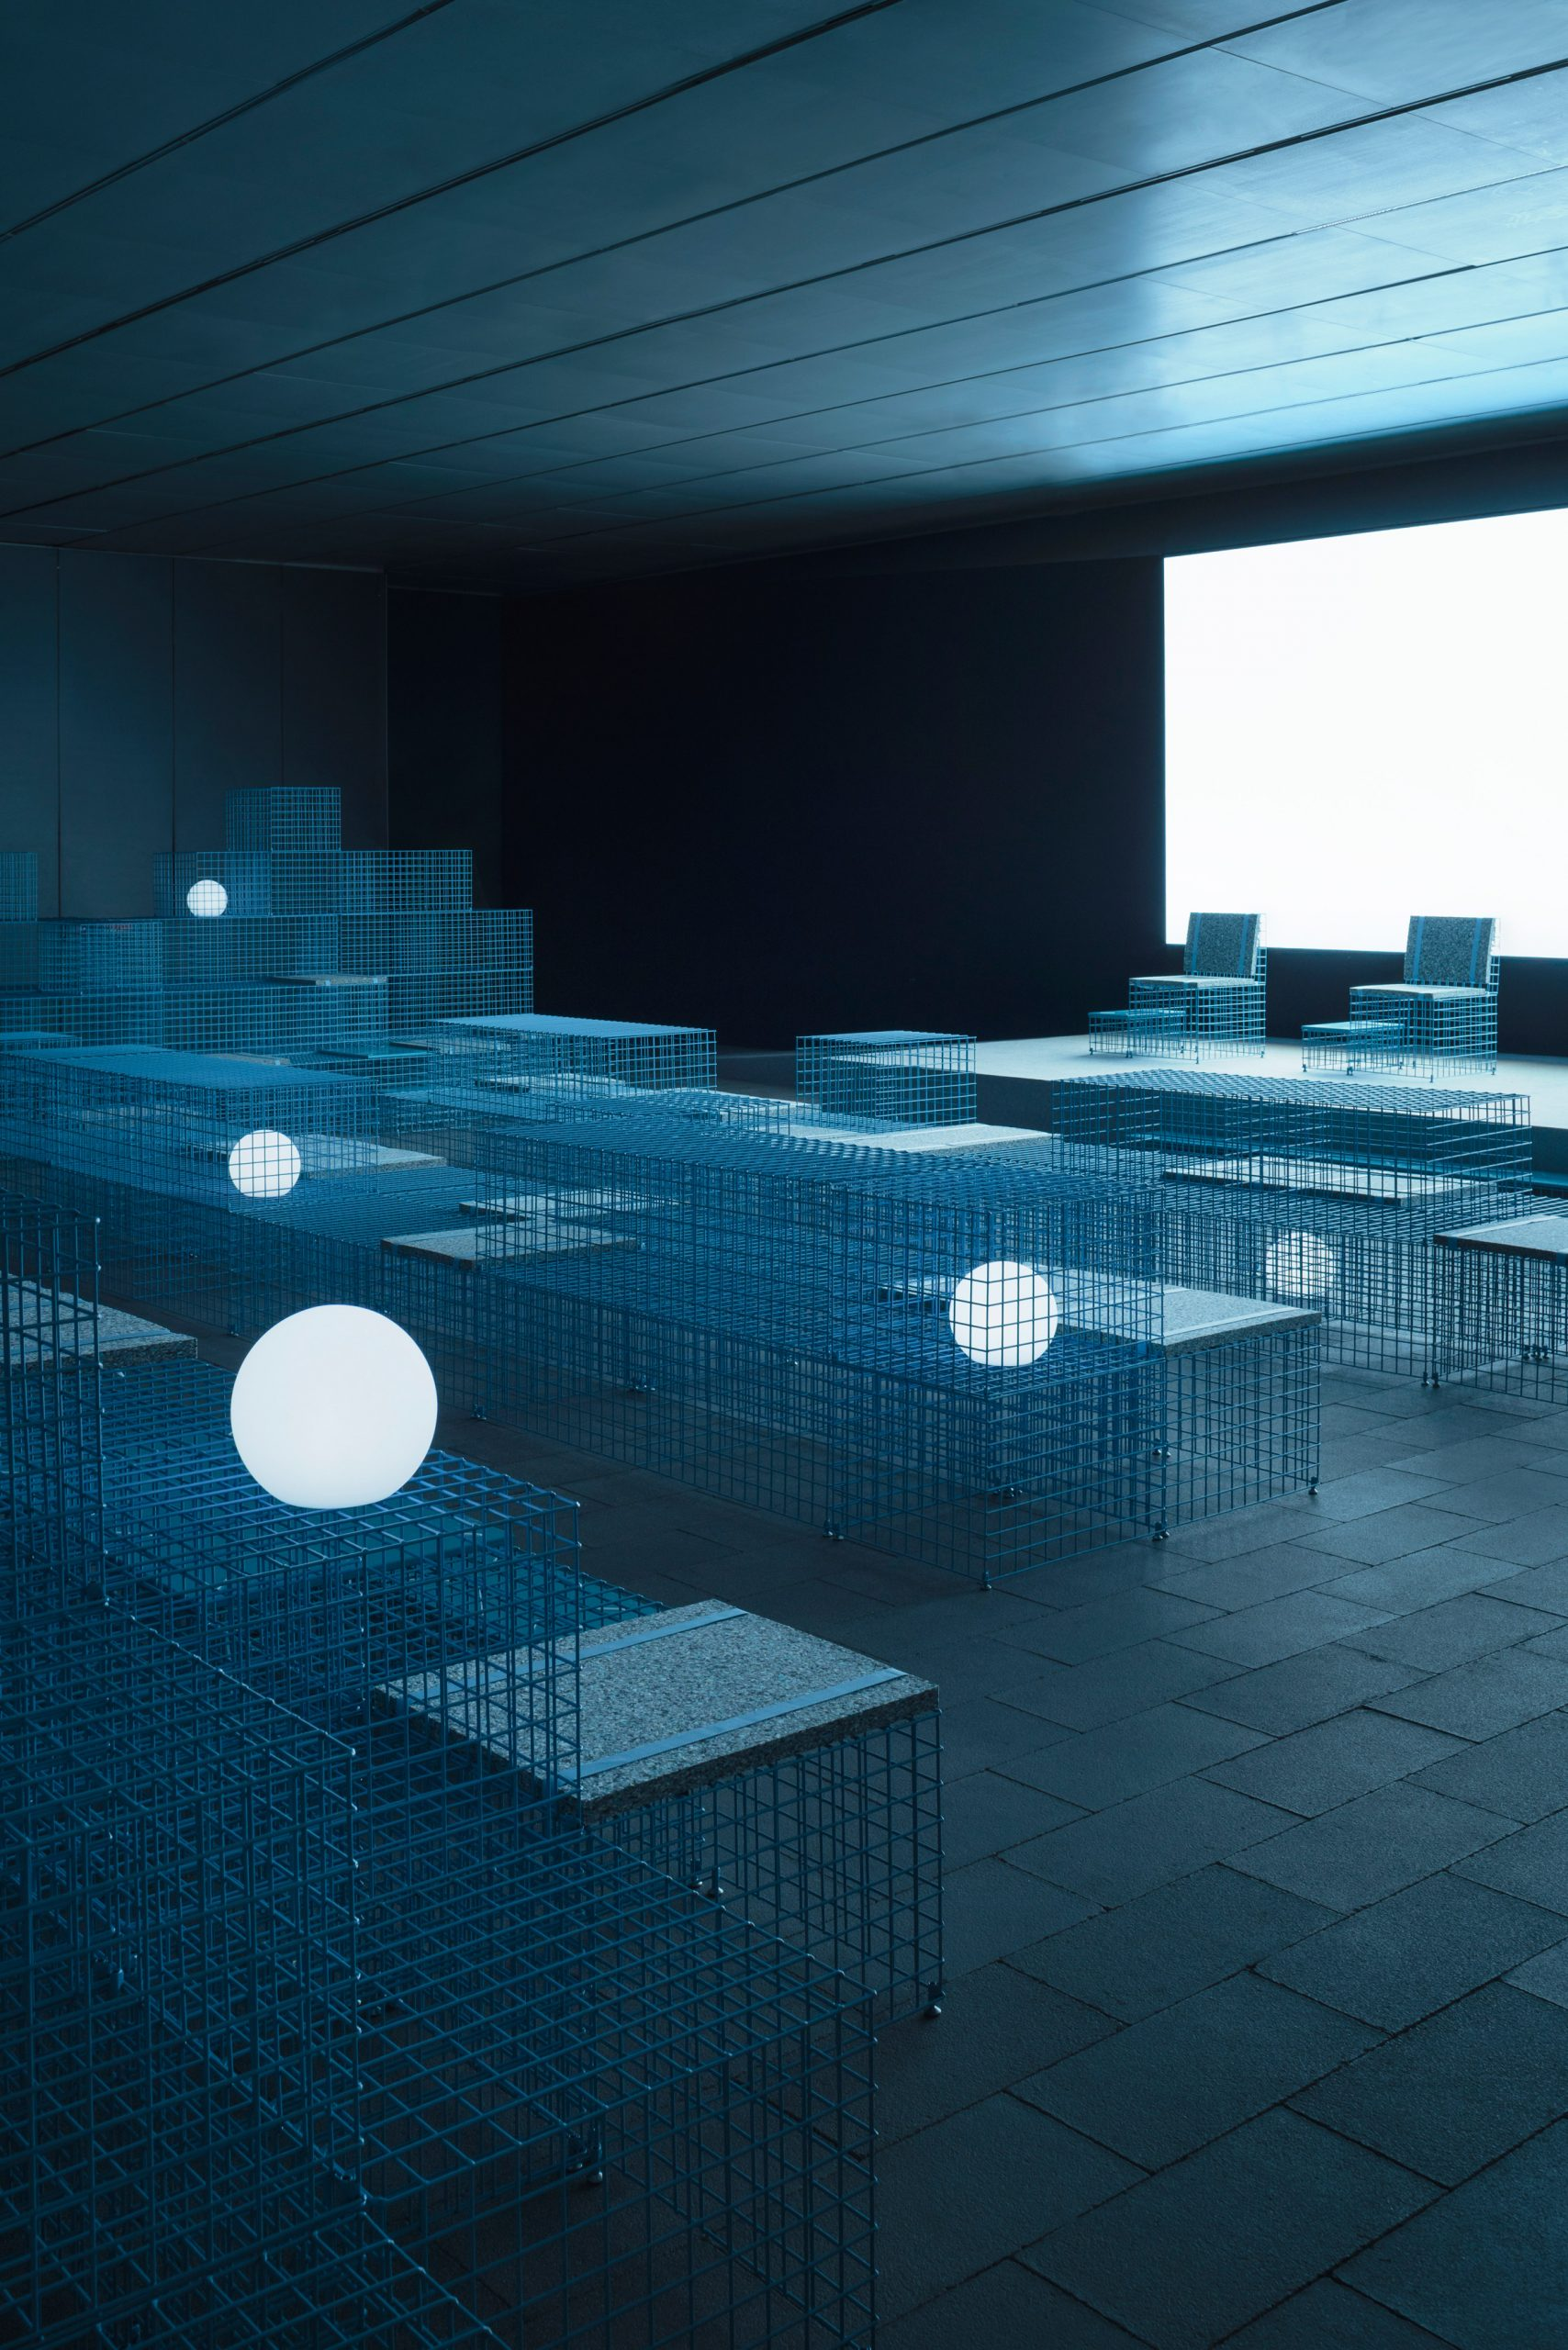 The installation used gridded metal boxes to create seating